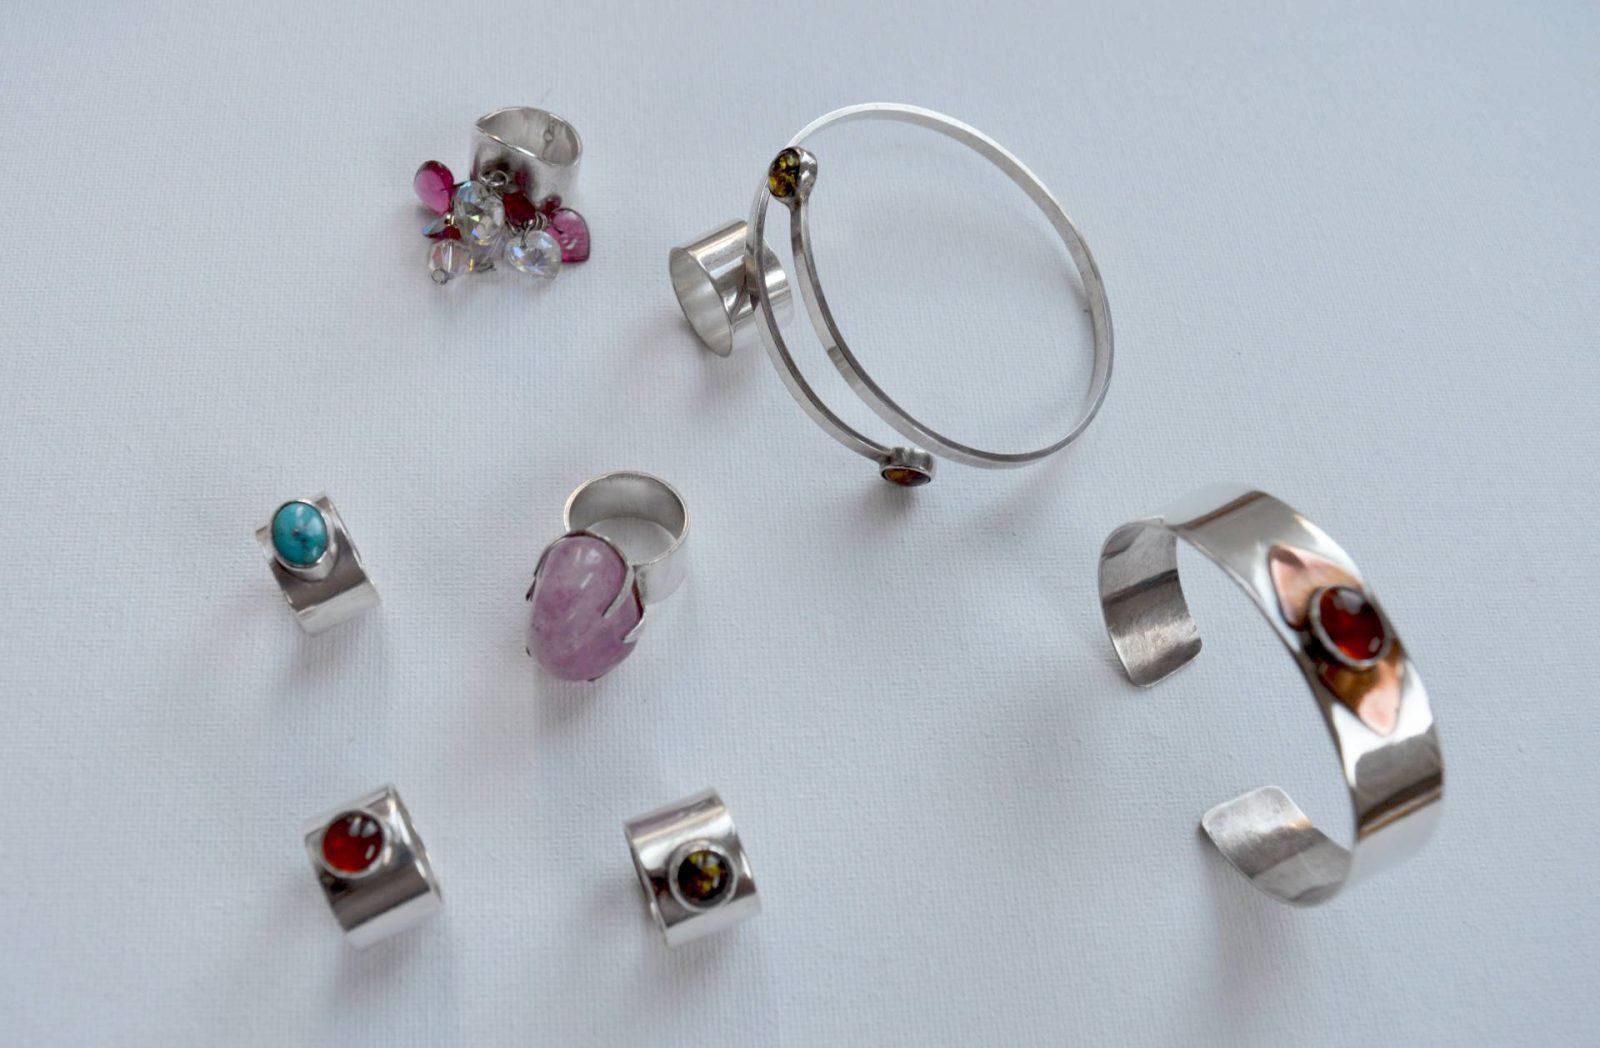 It's Time to Start Making Jewellery Again